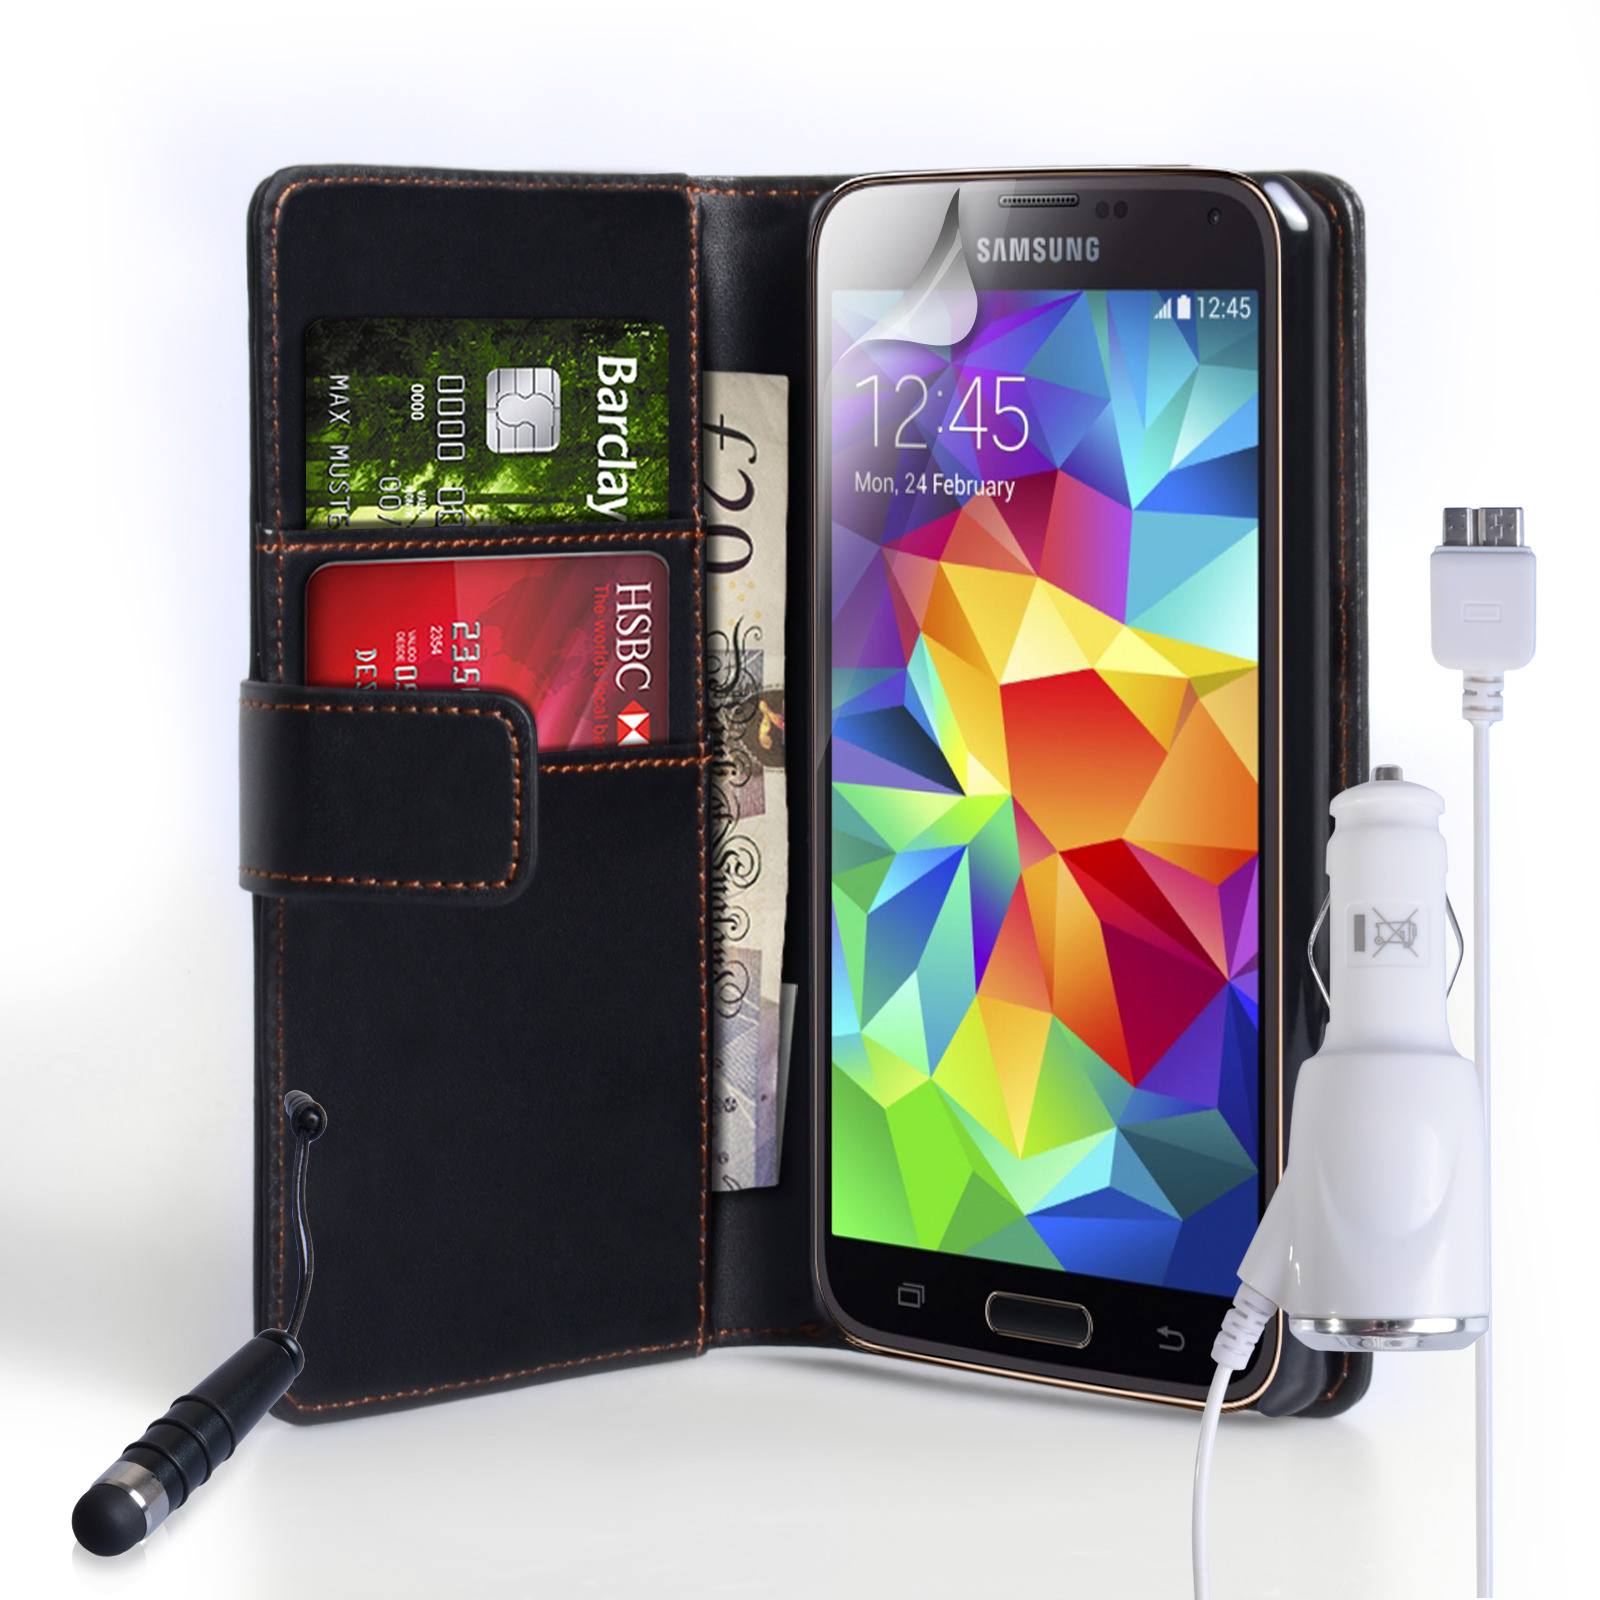 YouSave Galaxy S5 Leather-Effect Wallet Case Mini Pen and Car Charger